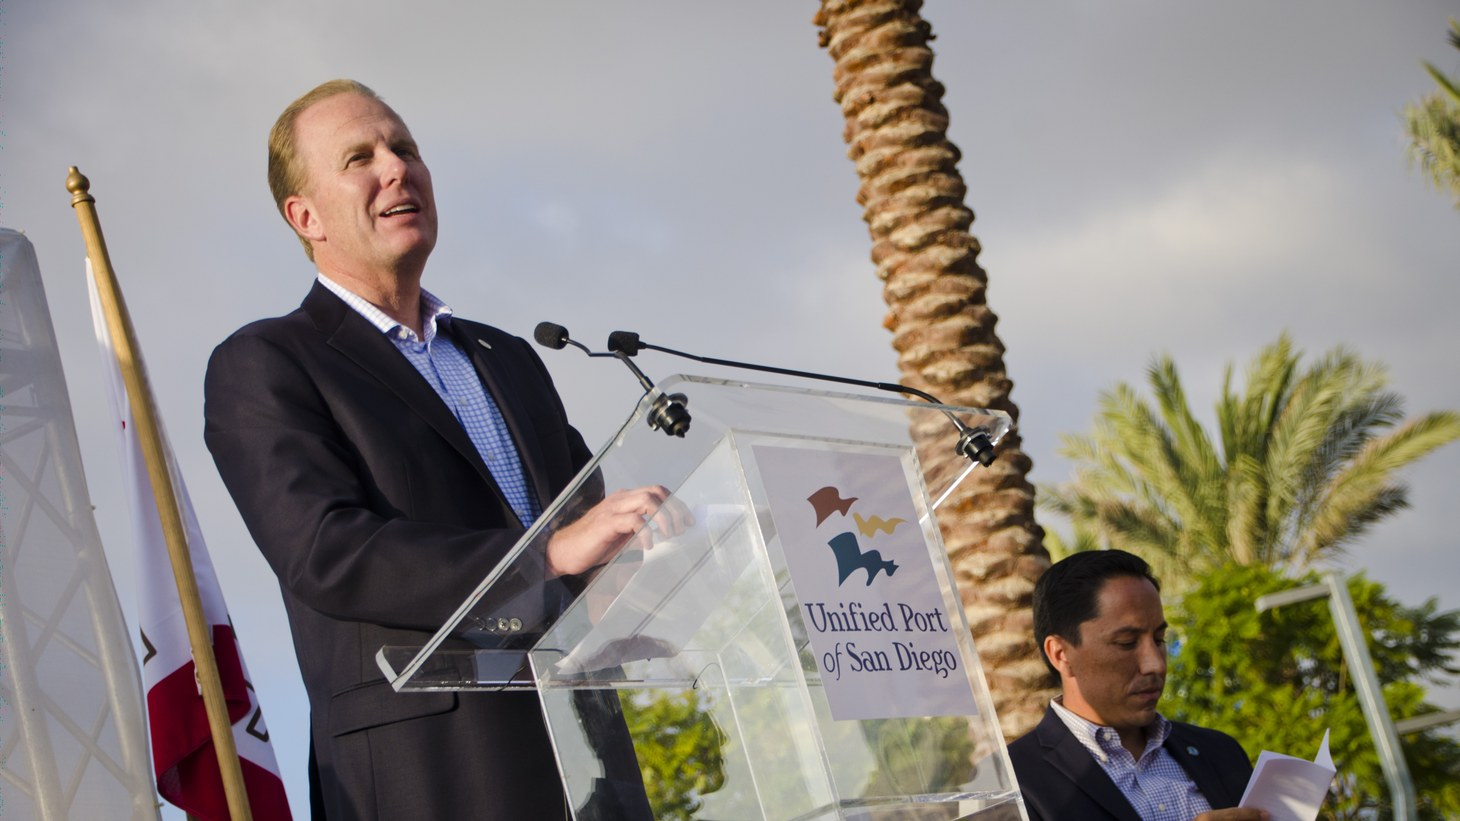 Kevin Faulconer speaking at the San Diego port in 2014. He just ended six years as San Diego's mayor. He now wants to be California's new governor if Gavin Newsom is recalled.